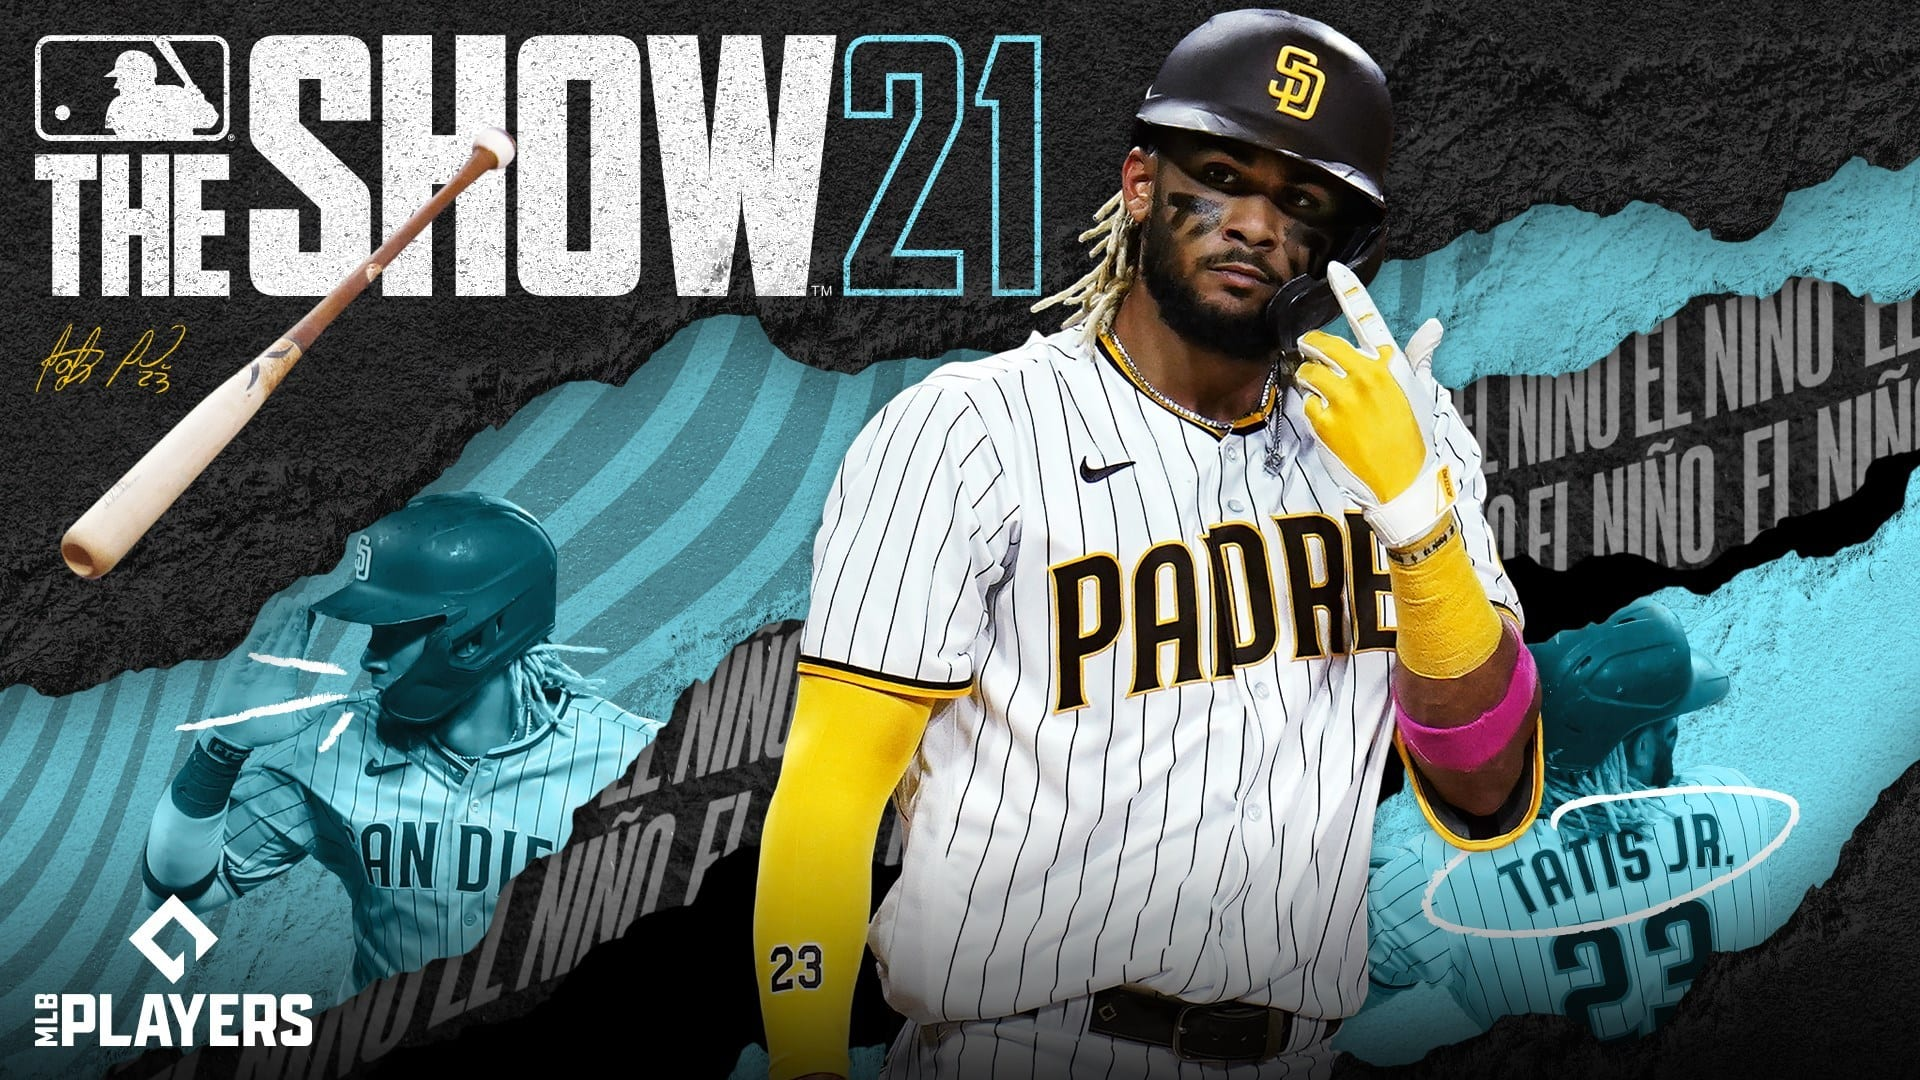 best hitting settings, view, mlb the show 21